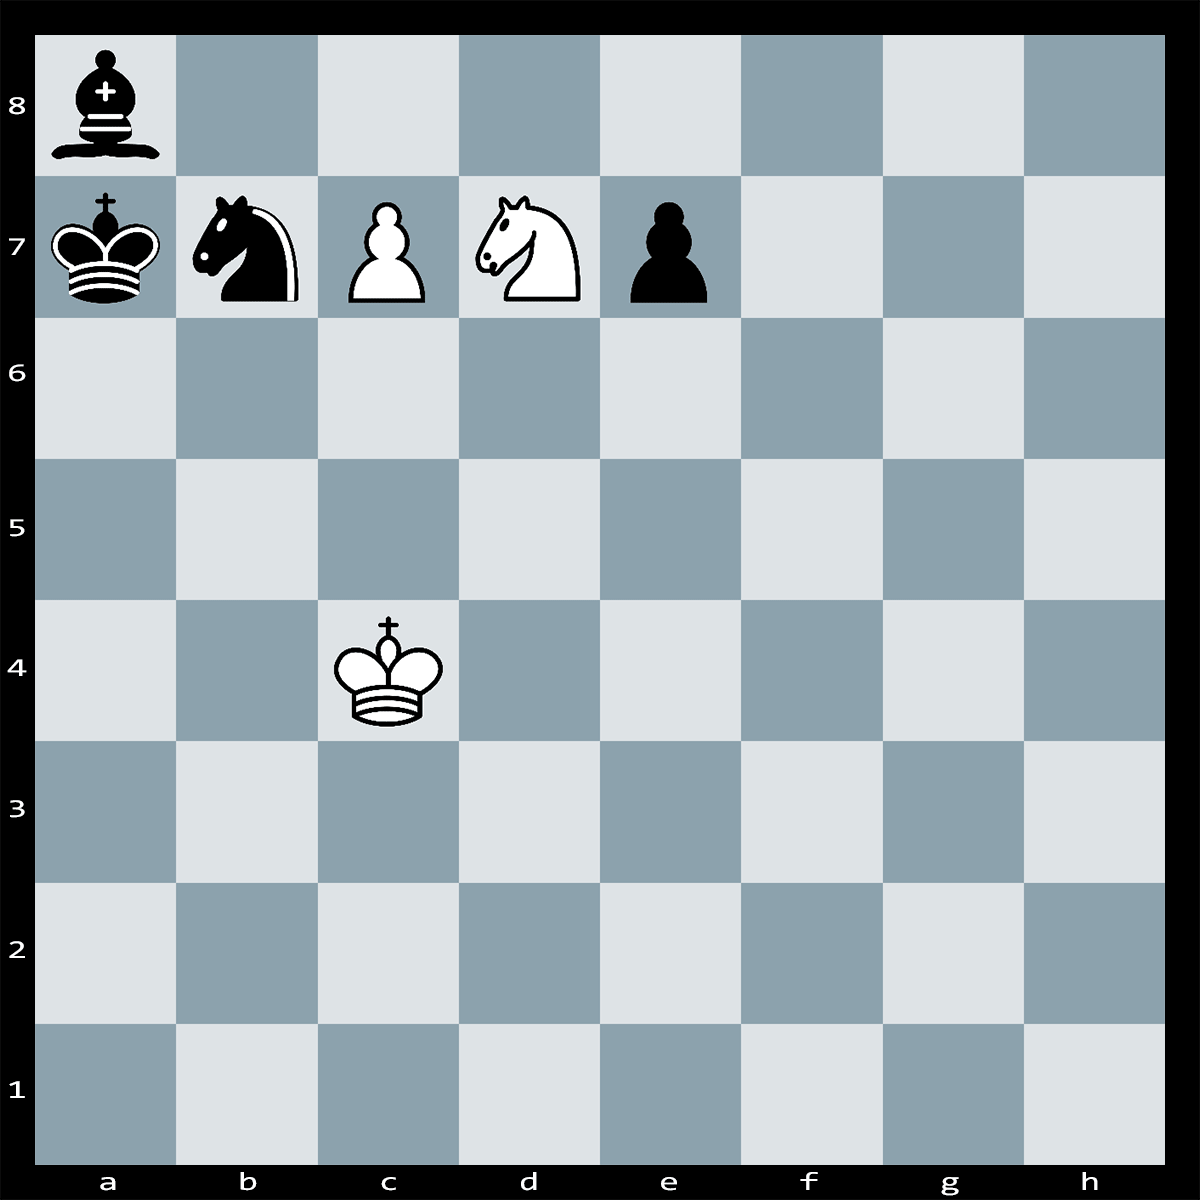 Chess Puzzle #254 | White has a very strong move. Can you spot it? How can White checkmate in three moves?